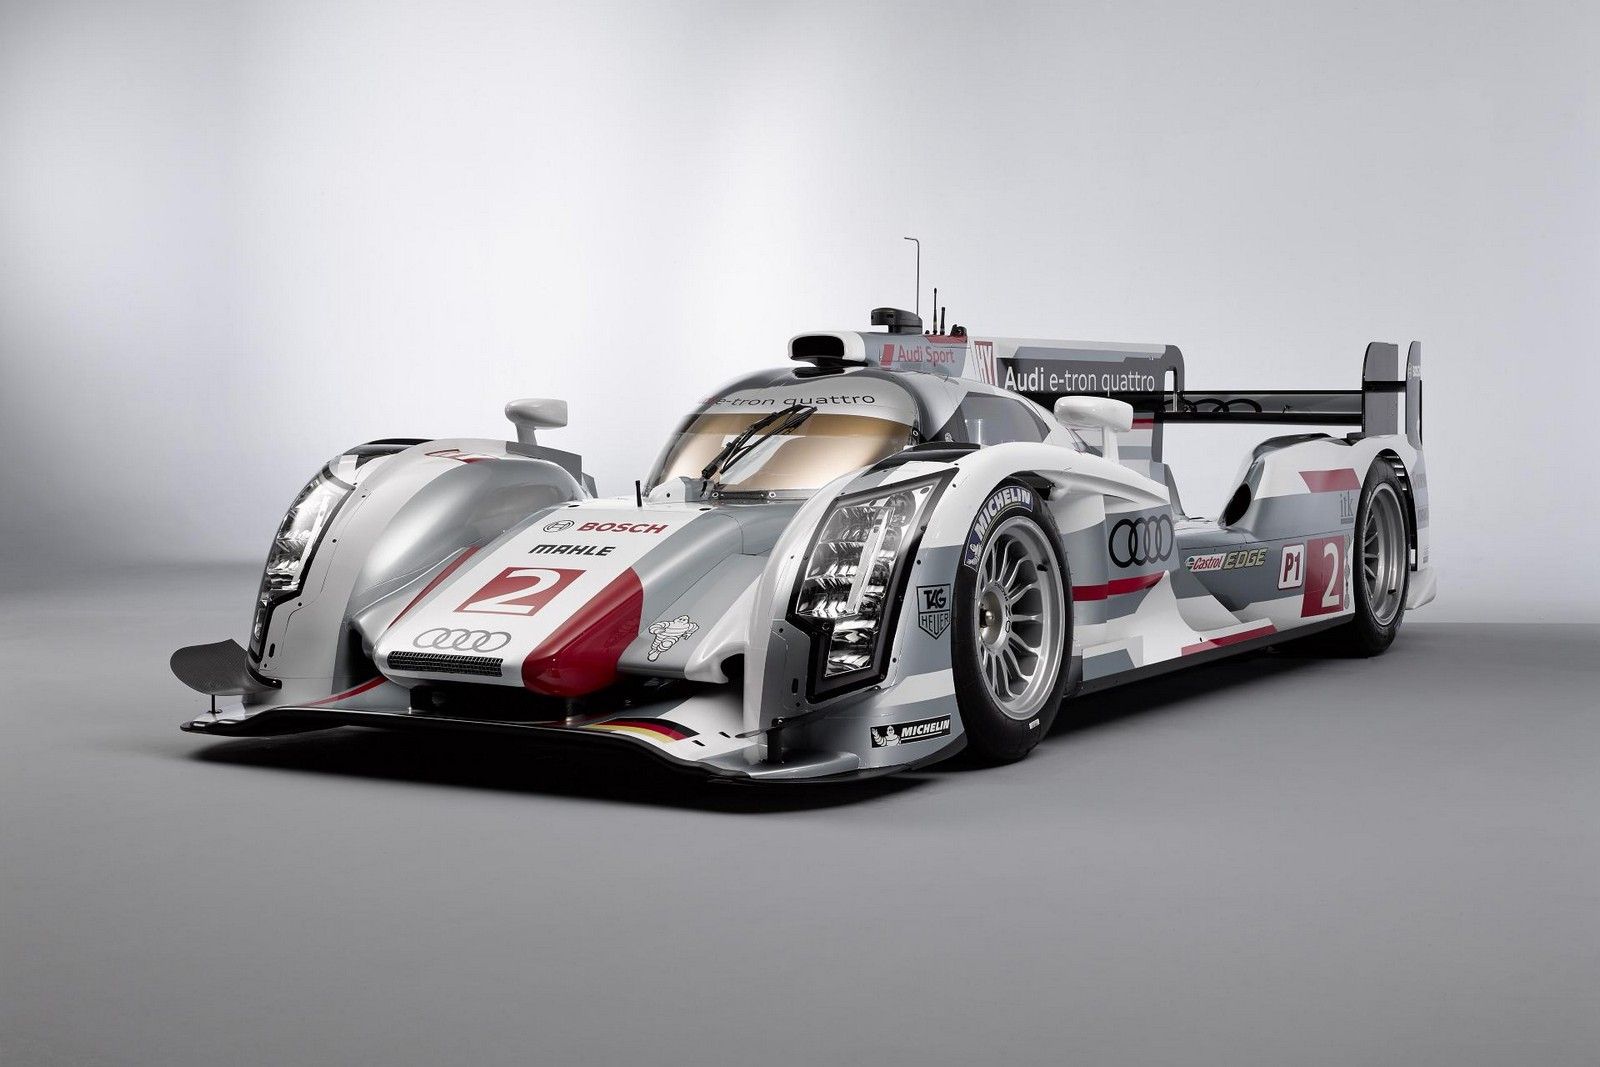 audi to debut r18 e tron quattro at 12 hours of sebring gtspirit. Black Bedroom Furniture Sets. Home Design Ideas